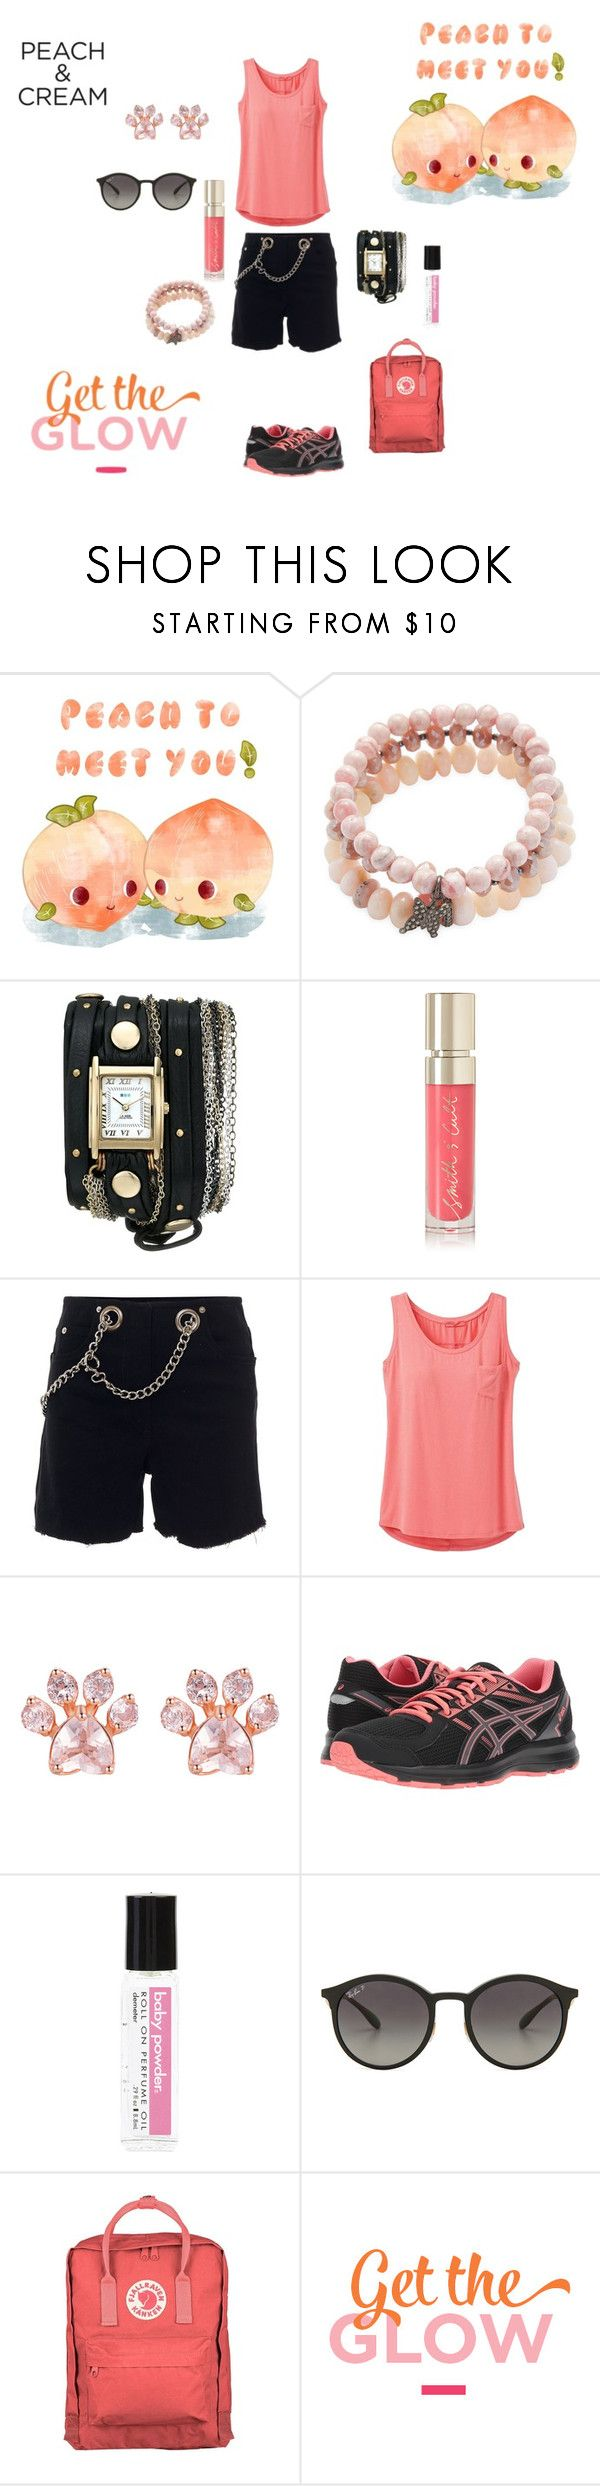 """Peach Dream"" by sweetpeachbellini ❤ liked on Polyvore featuring beauty, Bavna, La Mer, Smith & Cult, Miaou, prAna, Asics, Demeter Fragrance Library, Ray-Ban and Fjällräven"